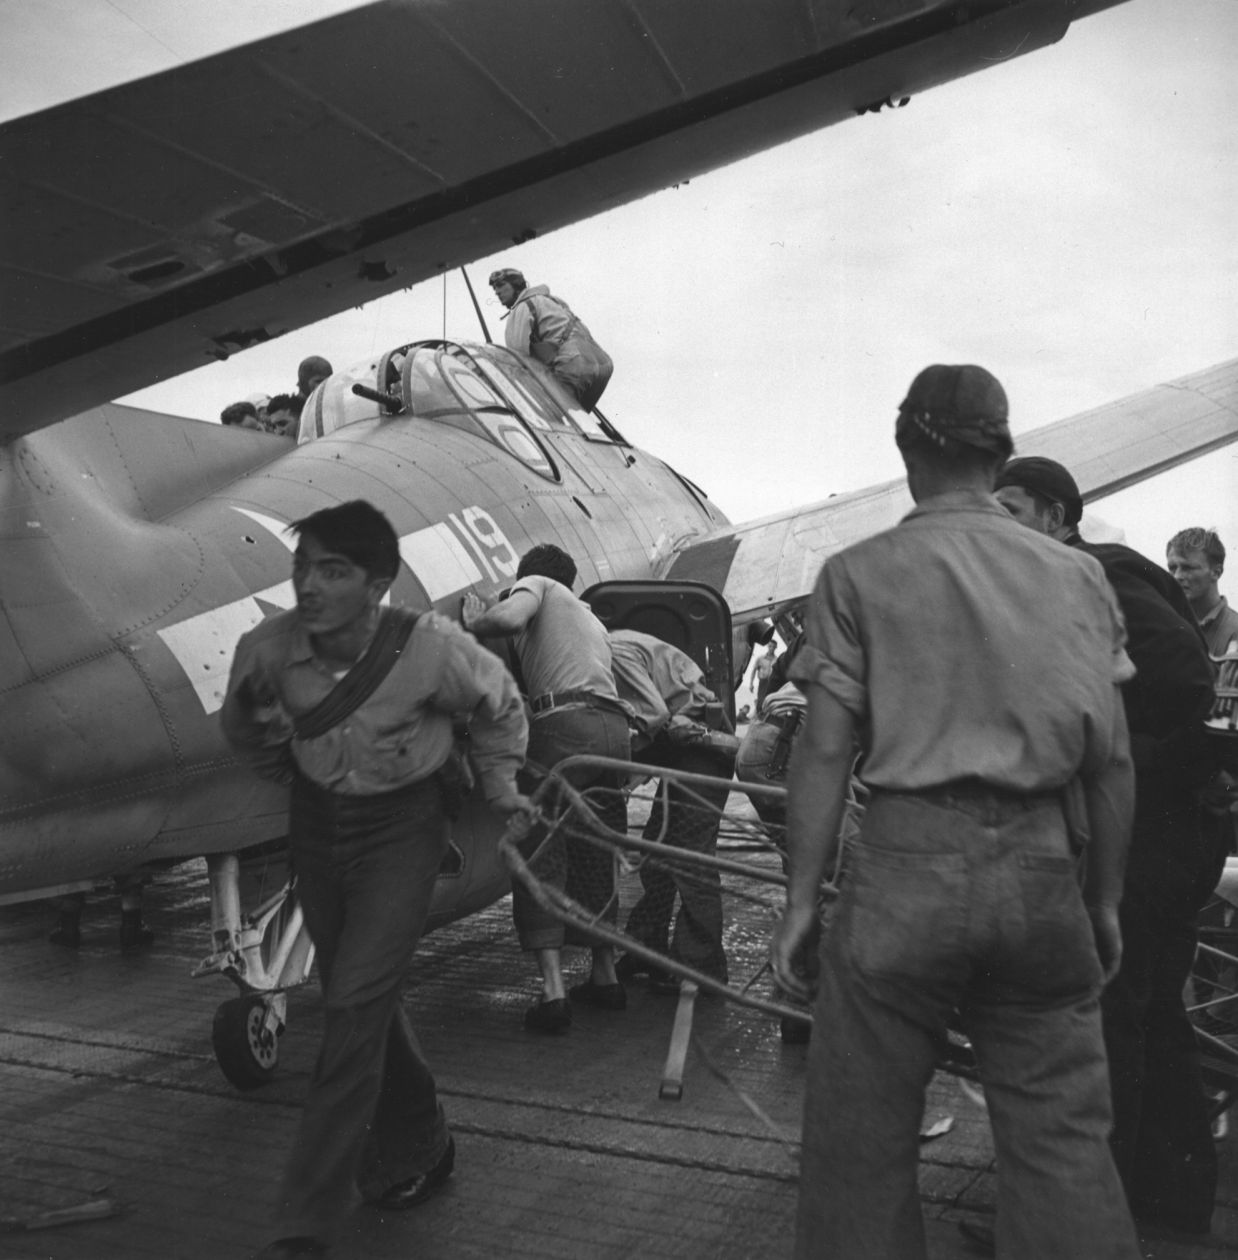 Pacific Theater, WWII (preparing for battle) (1942-45) by Wayne Miller